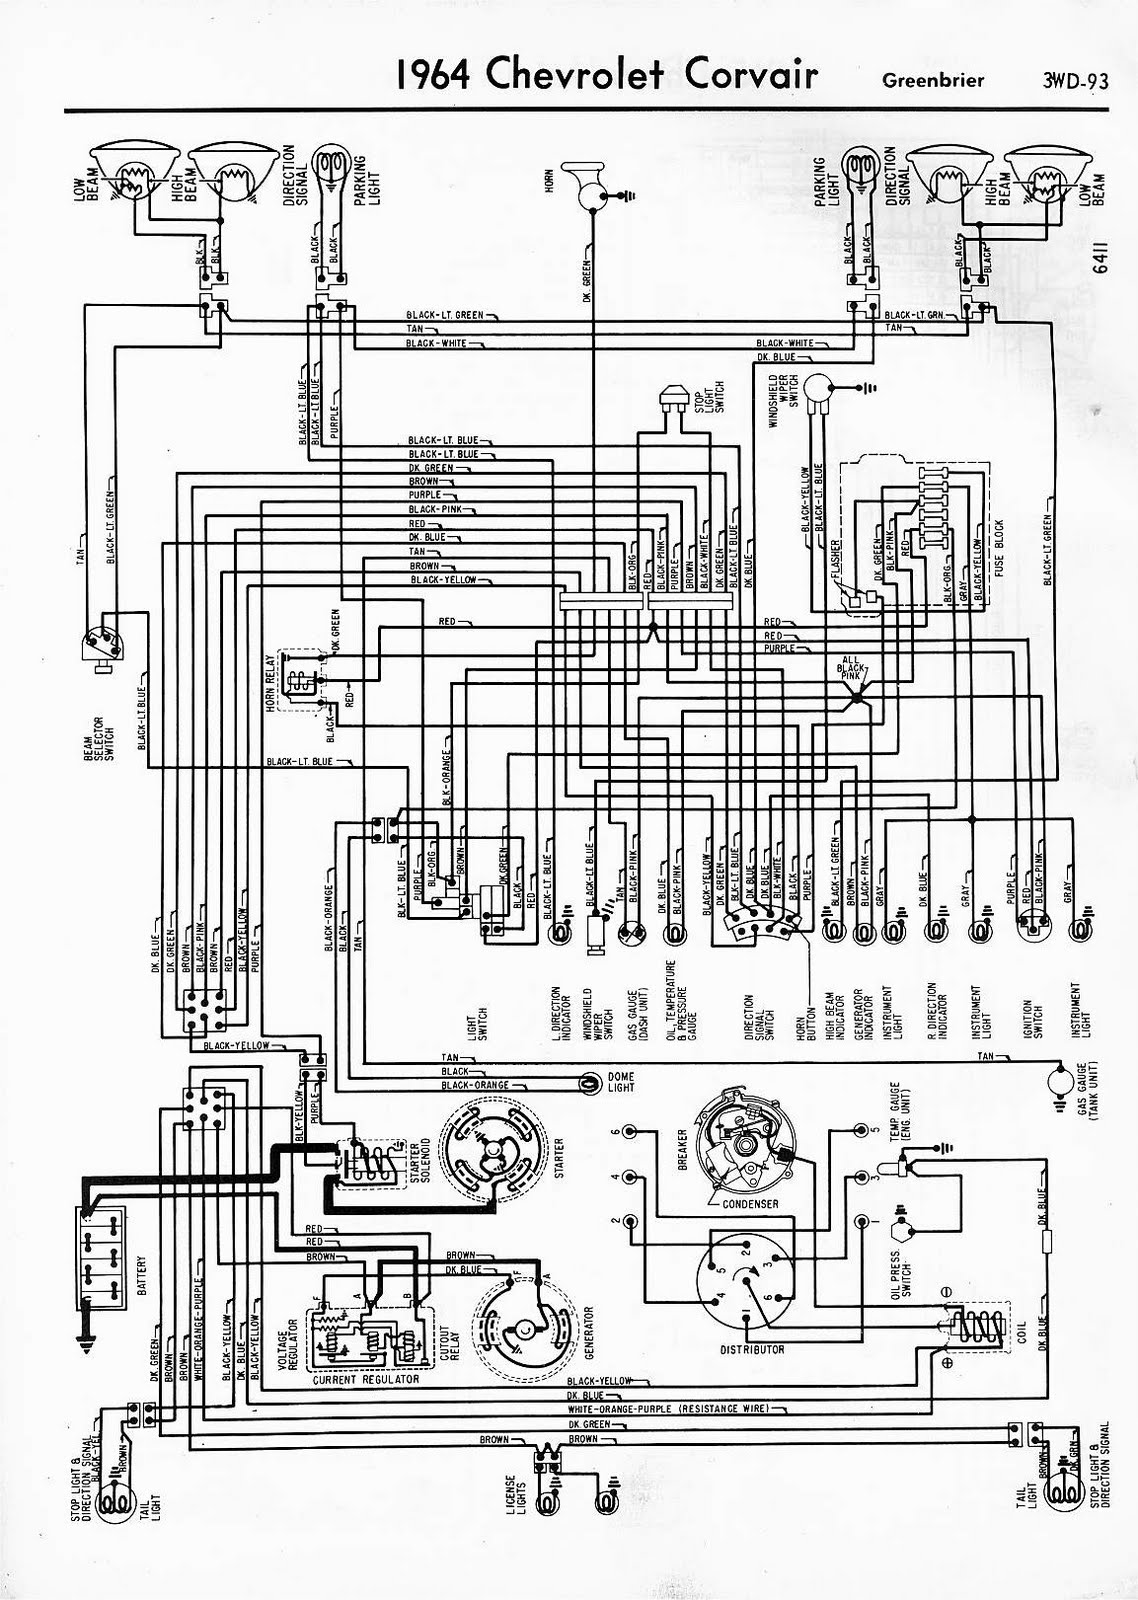 2000 chevy impala fuel gauge wiring diagram html with 1964 Chevrolet Corvair Greenbrier on 04 Chevy Malibu Instrument Panel Cluster Wiring Diagram additionally 131294 Ez Topic Finder moreover Chevrolet Chevy Van 4 3 1993 Specs And Images also Chevy Evap System Diagram besides 8fvev Chevrolet Suburban 1500 Lt Replacing Fuel Pump.